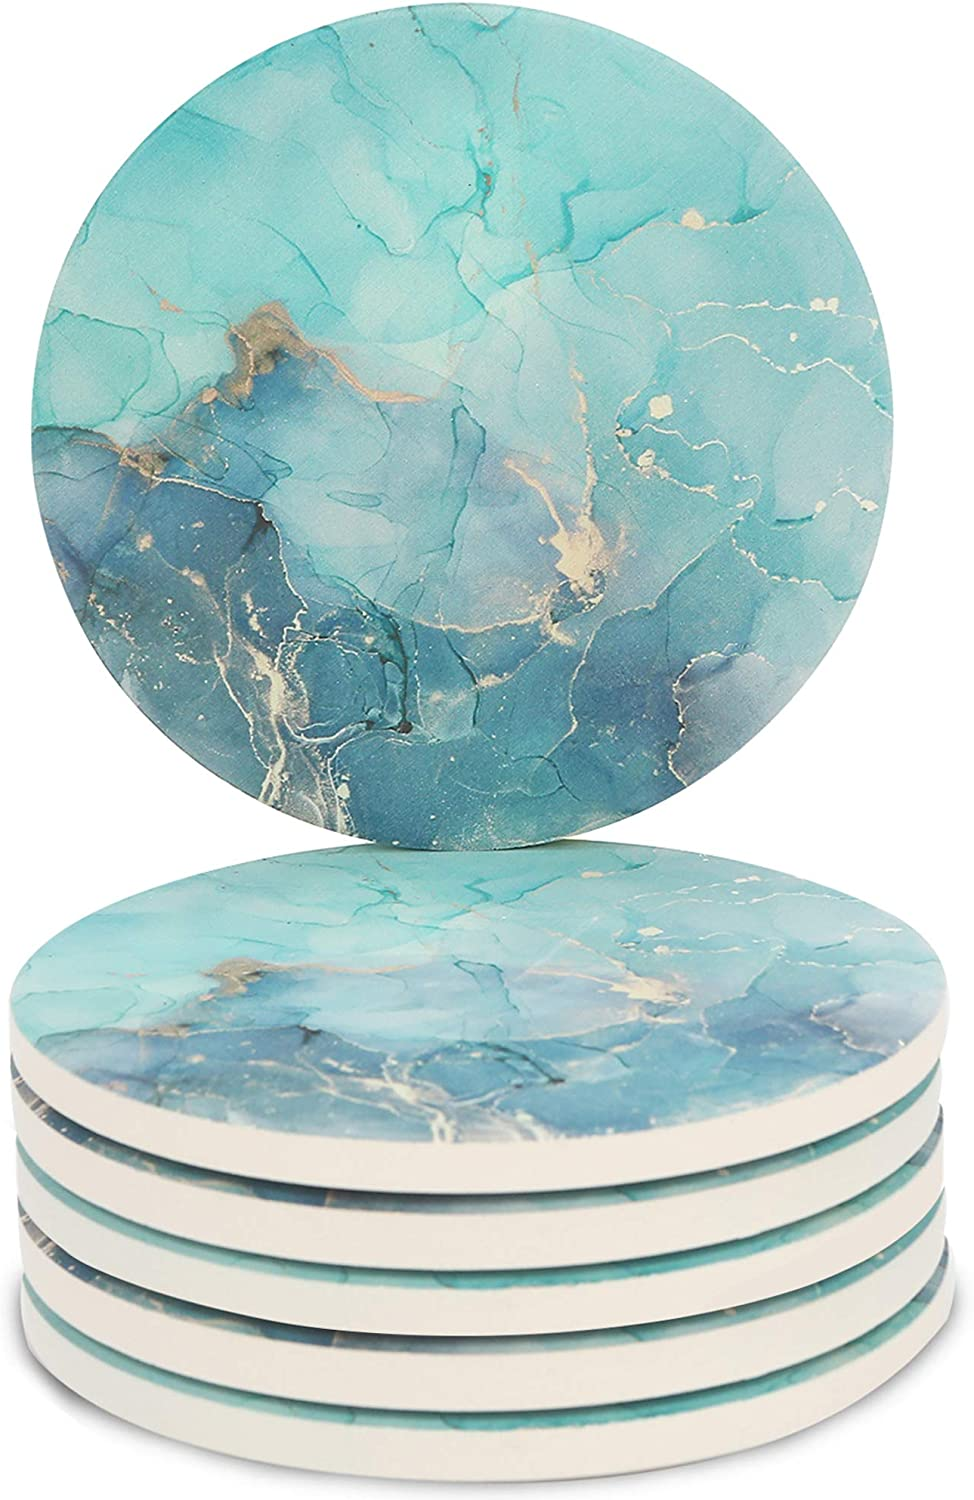 Miwen Coasters for Drinks, Marble Pattern (Teal+Gold), Absorbent Ceramic Stone with Cork Back, 4.25'' Large Diam, Prevent Furniture from Dirty, Spills, Water Ring, Housewarming Gift, Set of 6